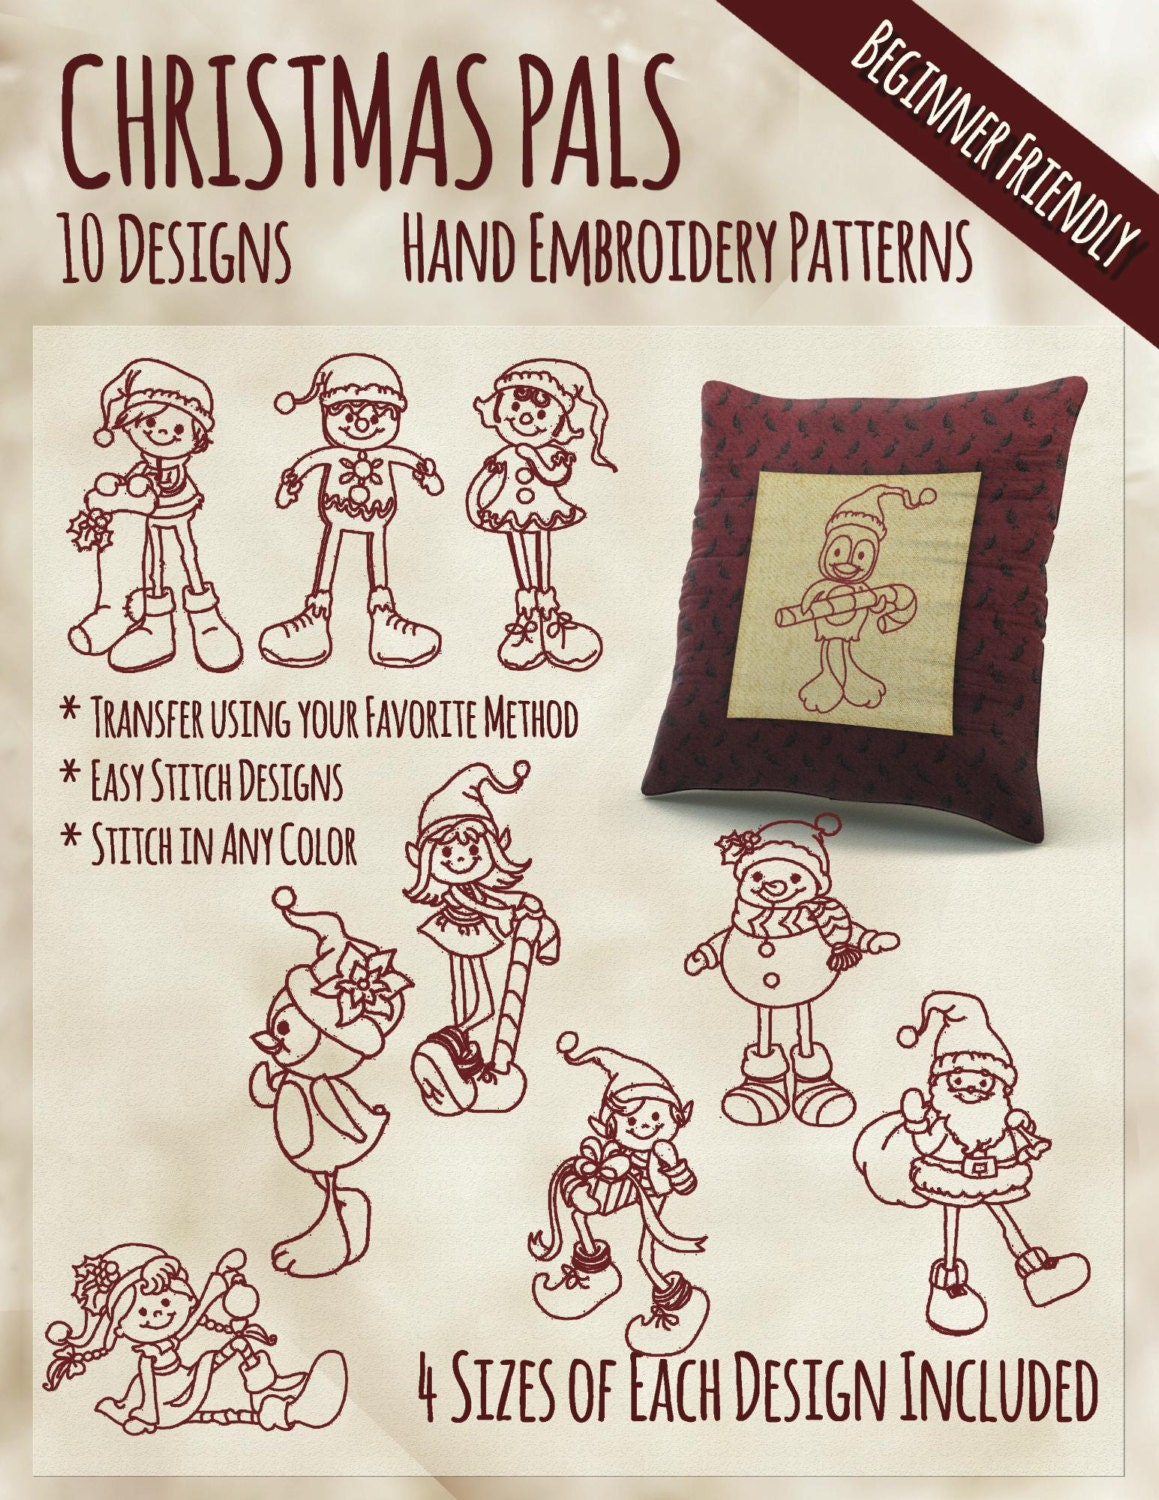 Sale hand embroidery patterns christmas pals in sizes pdf